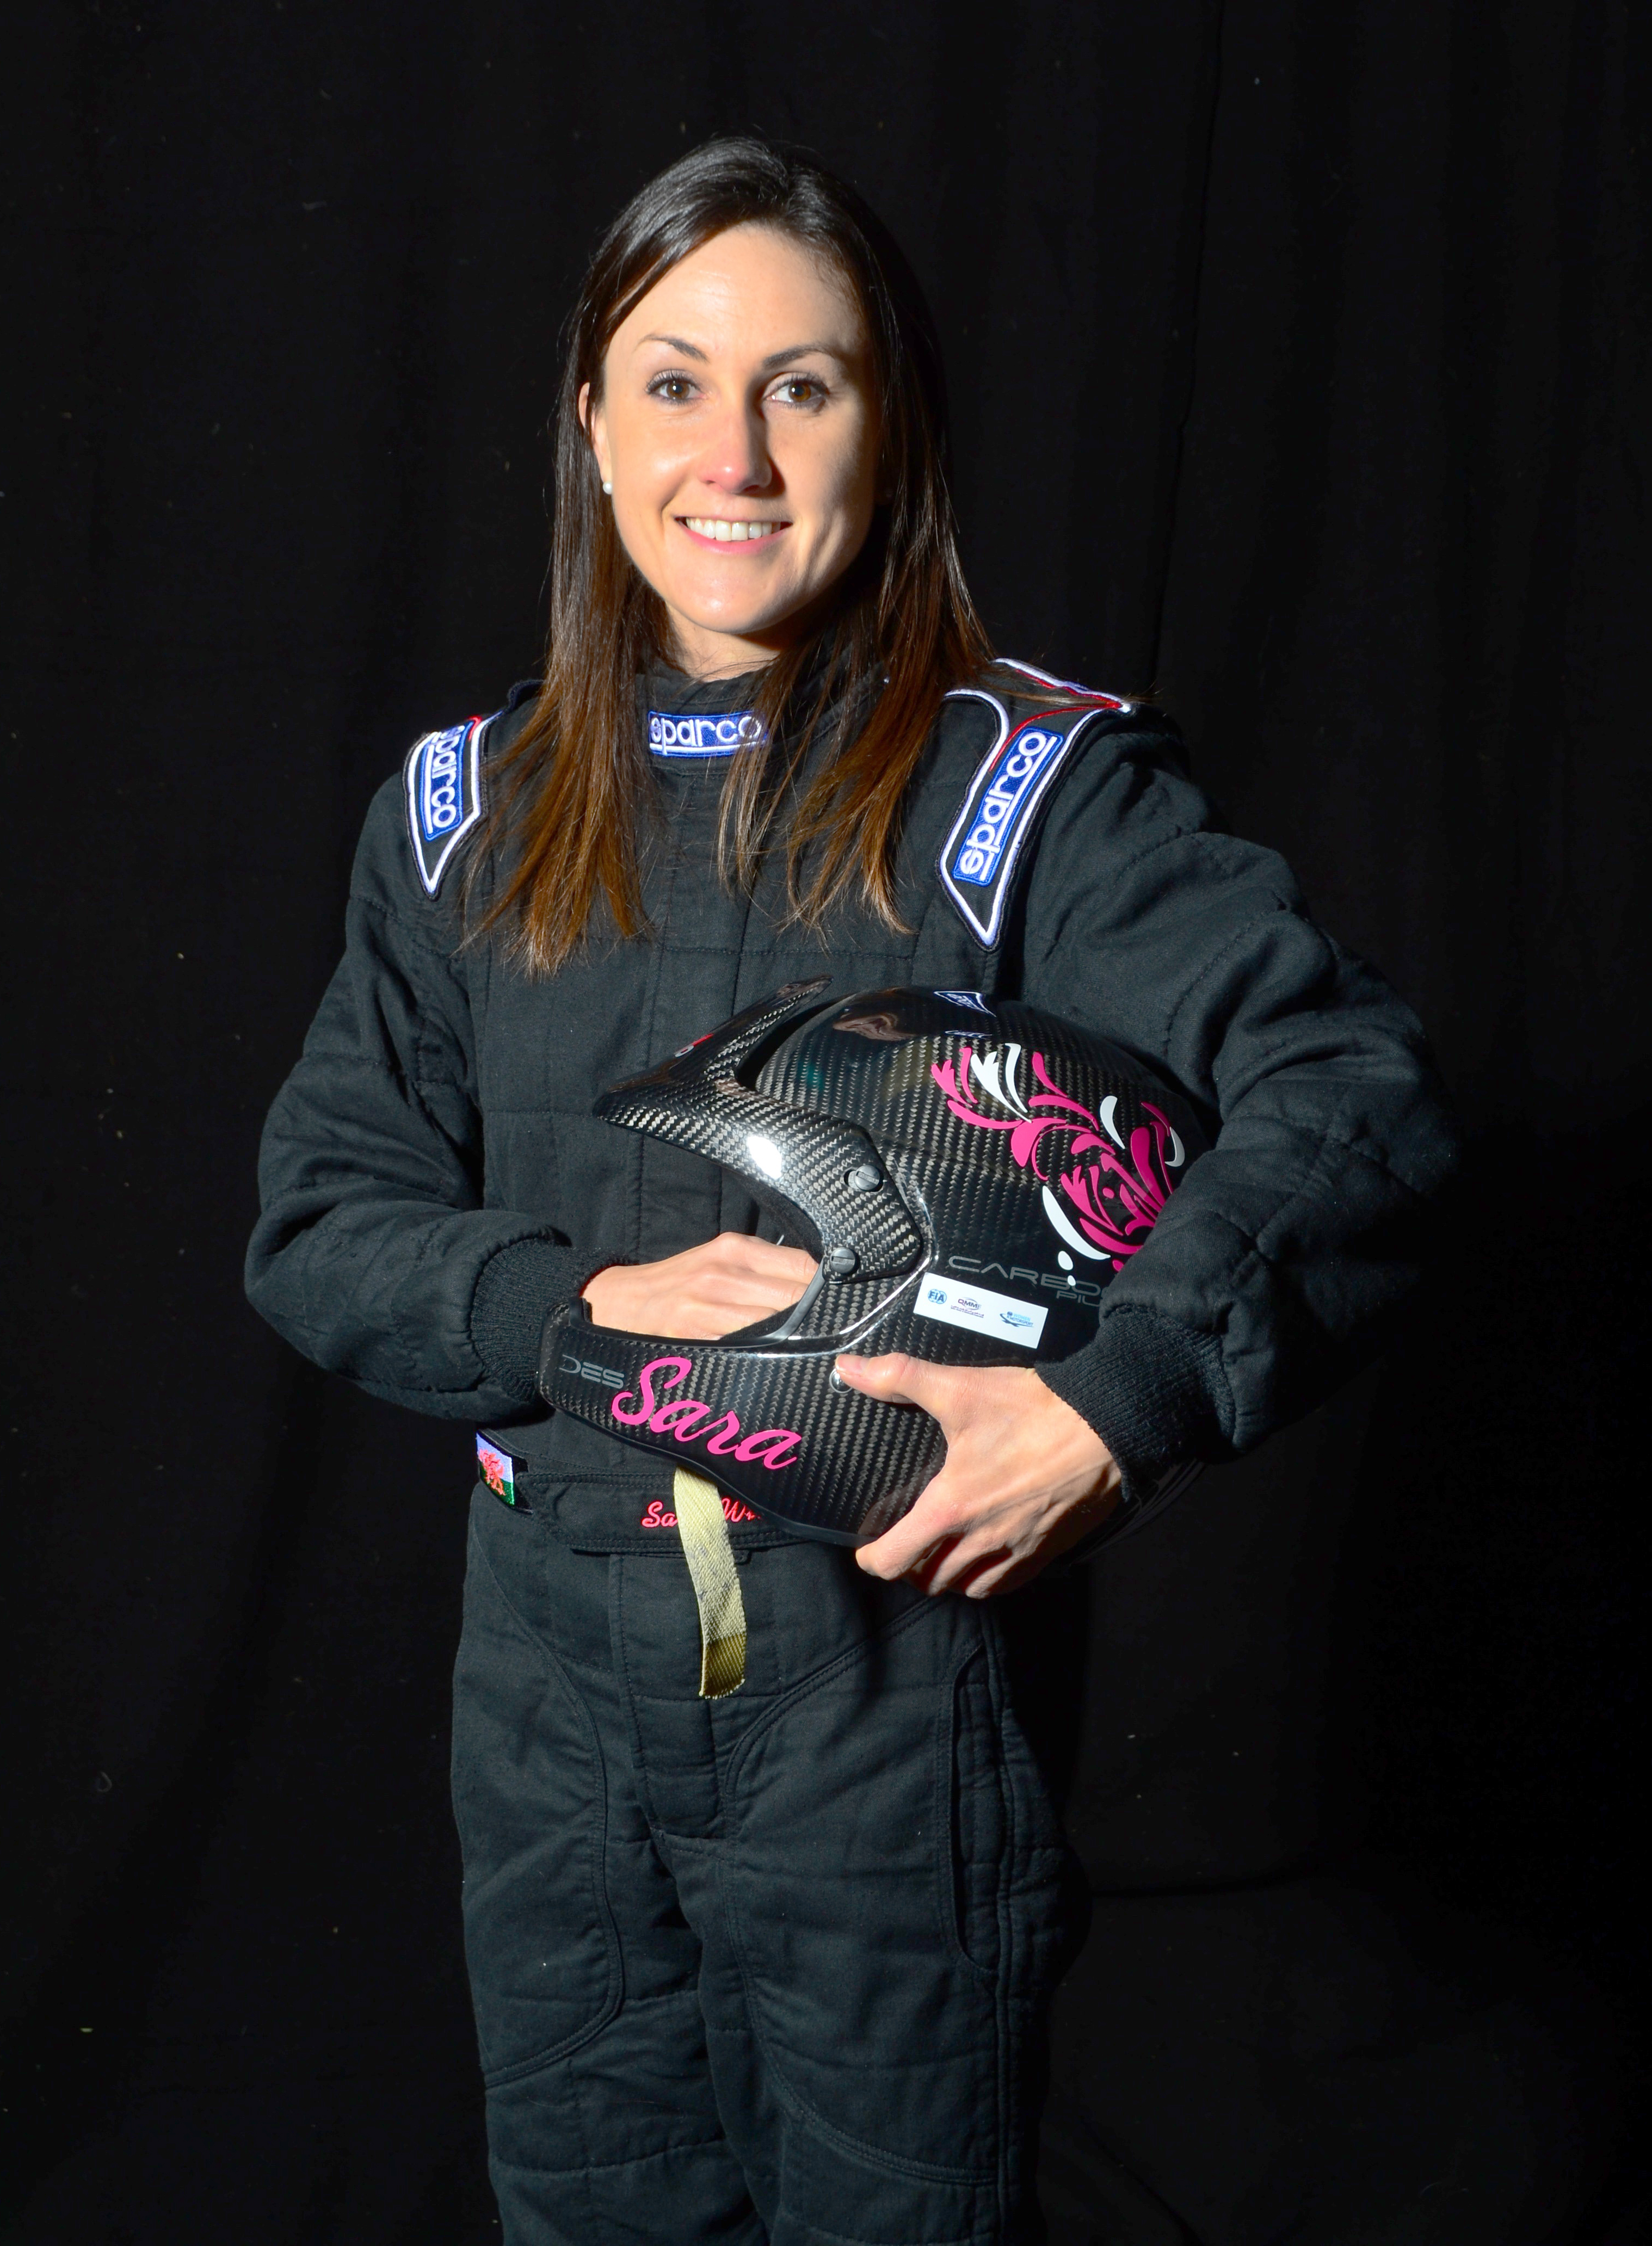 #1 British female rally driver Sara Williams nominated for BWRDC Elite GoldStars Award